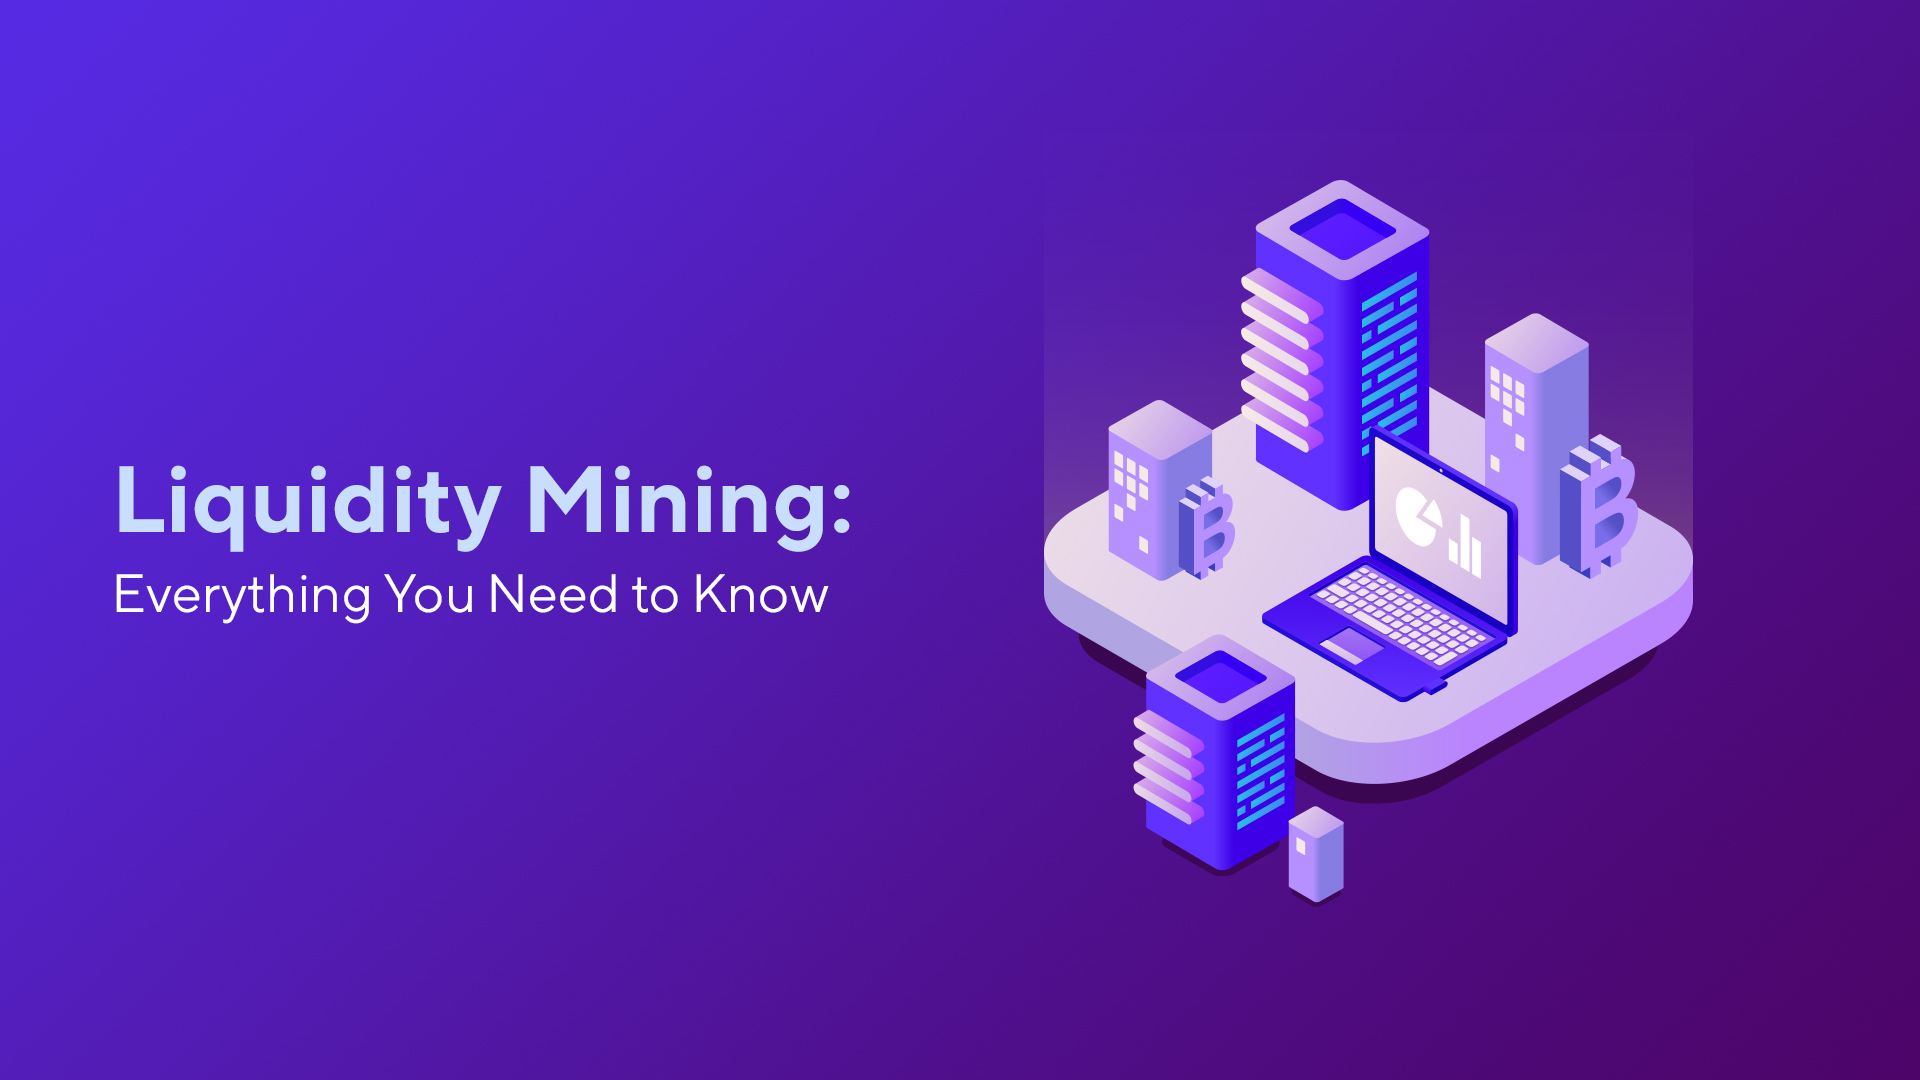 Liquidity Mining: Everything You Need to Know